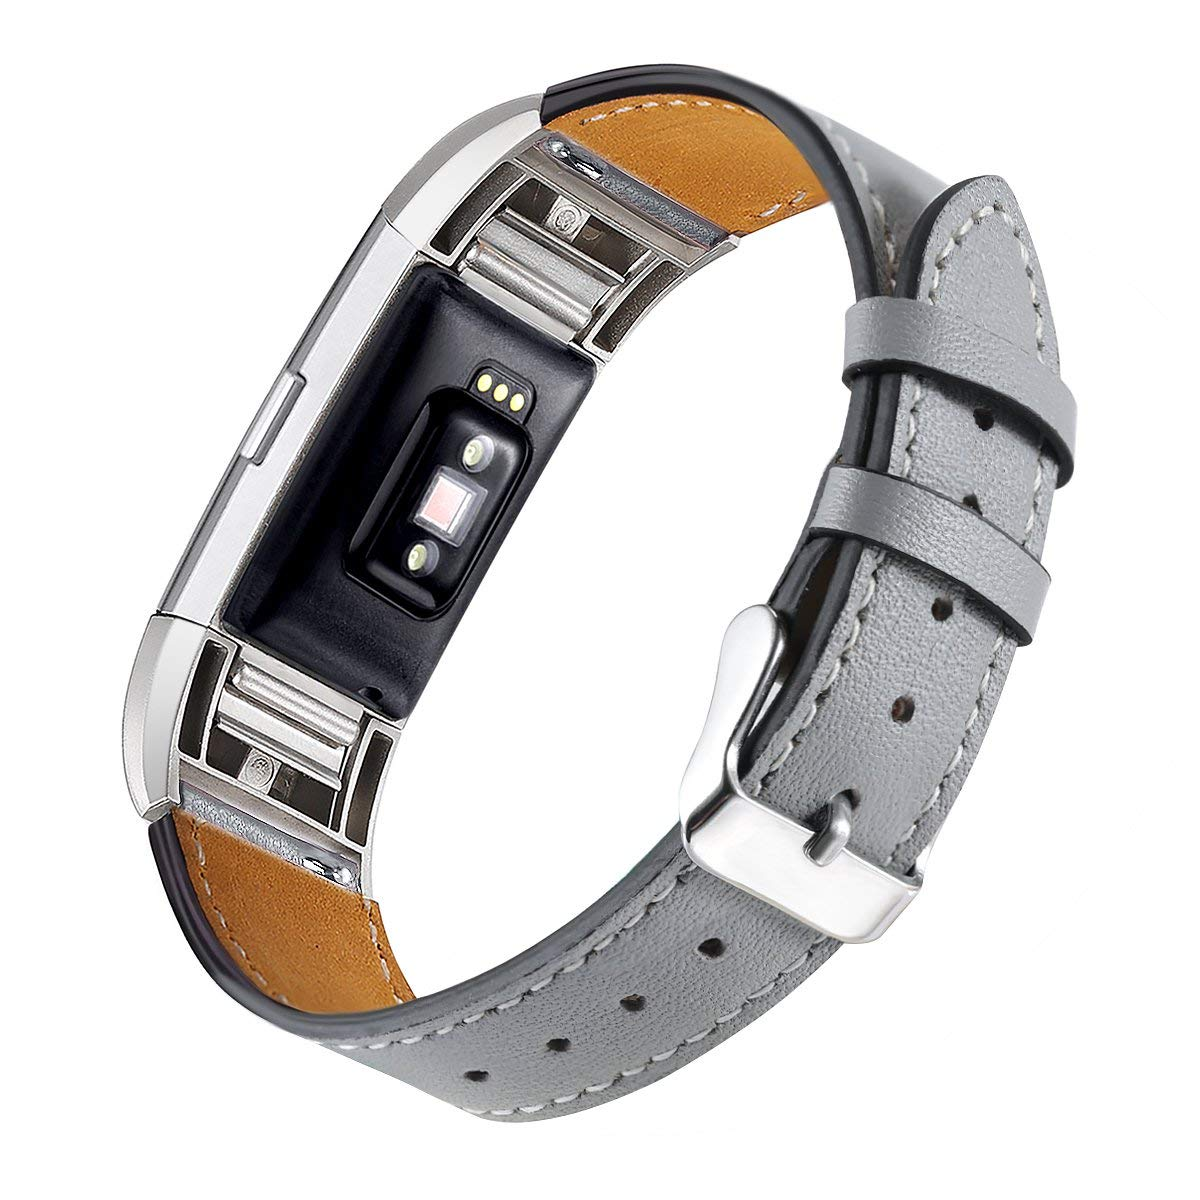 Handodo Fitbit Charge 2 Band - Premium Genuine Leather Wristbands with Metal Connectors Fitbit Band image17